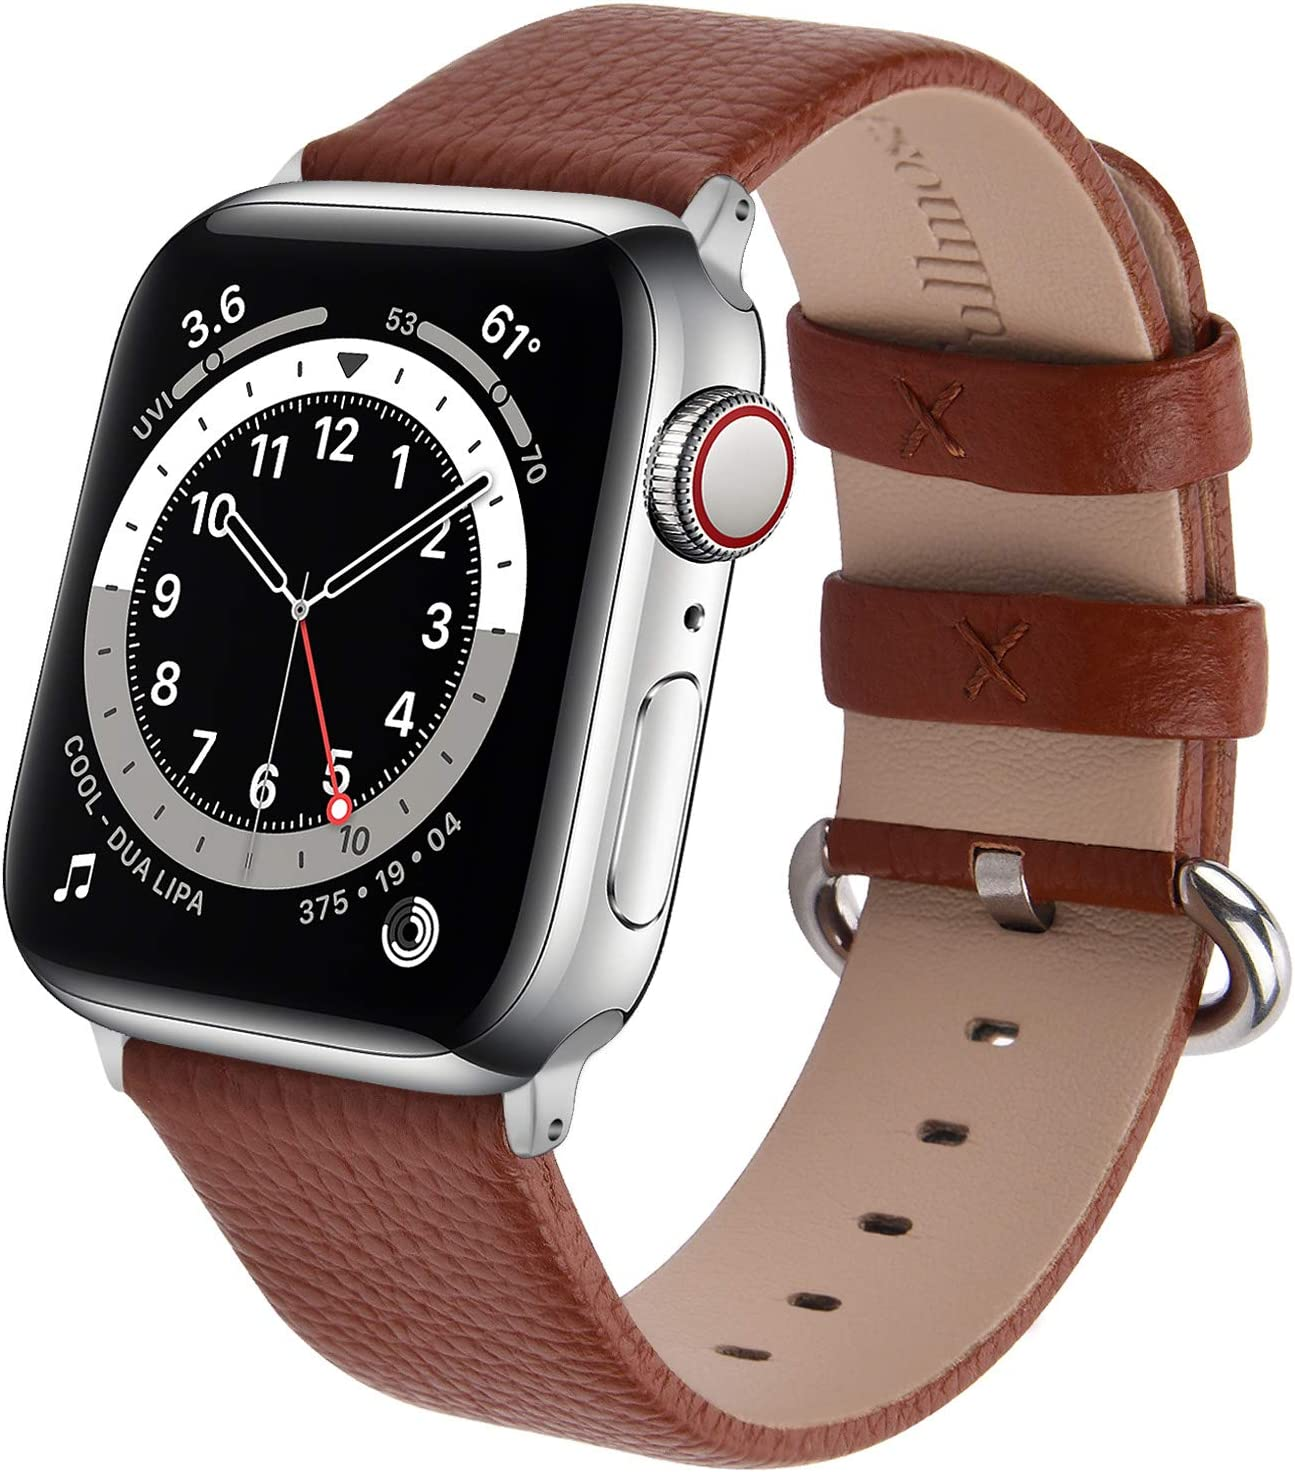 Leather Watch Band Fullmosa Compatible for Apple Watch Band Leather Series 6/SE/ 5/4/3/2/1 Stainless Steel Silver Buckle Women Men 38mm 40mm 42mm 44mm, Replacement Wristbands Strap, Edition, Sport Straps